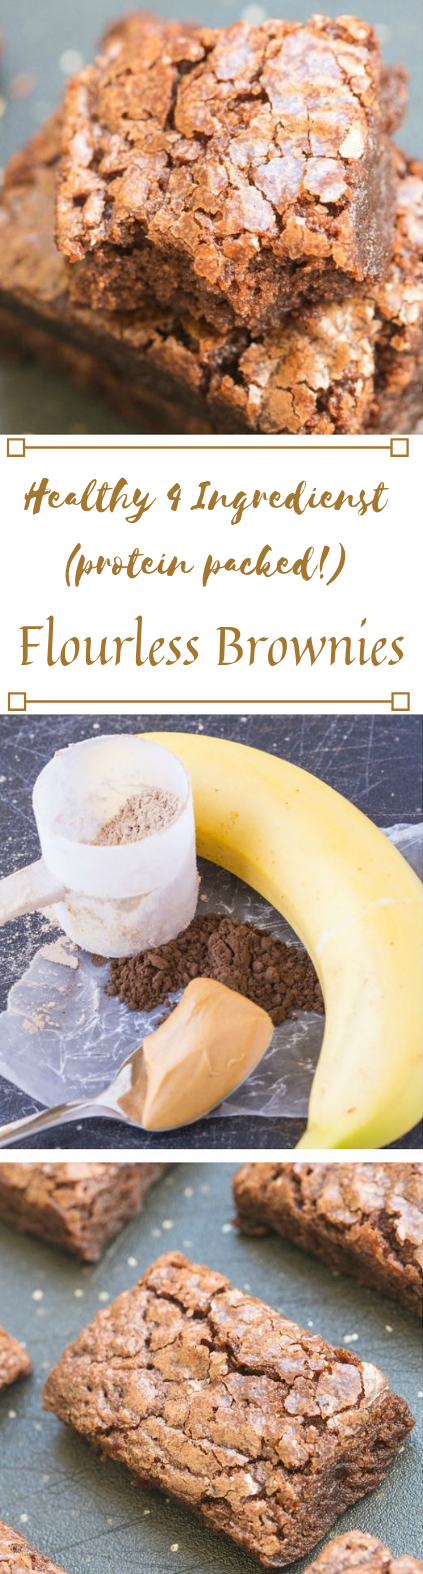 FOUR INGREDIENT FLOURLESS PROTEIN BROWNIES #desserts #cakes #healthycake #brownies #pie